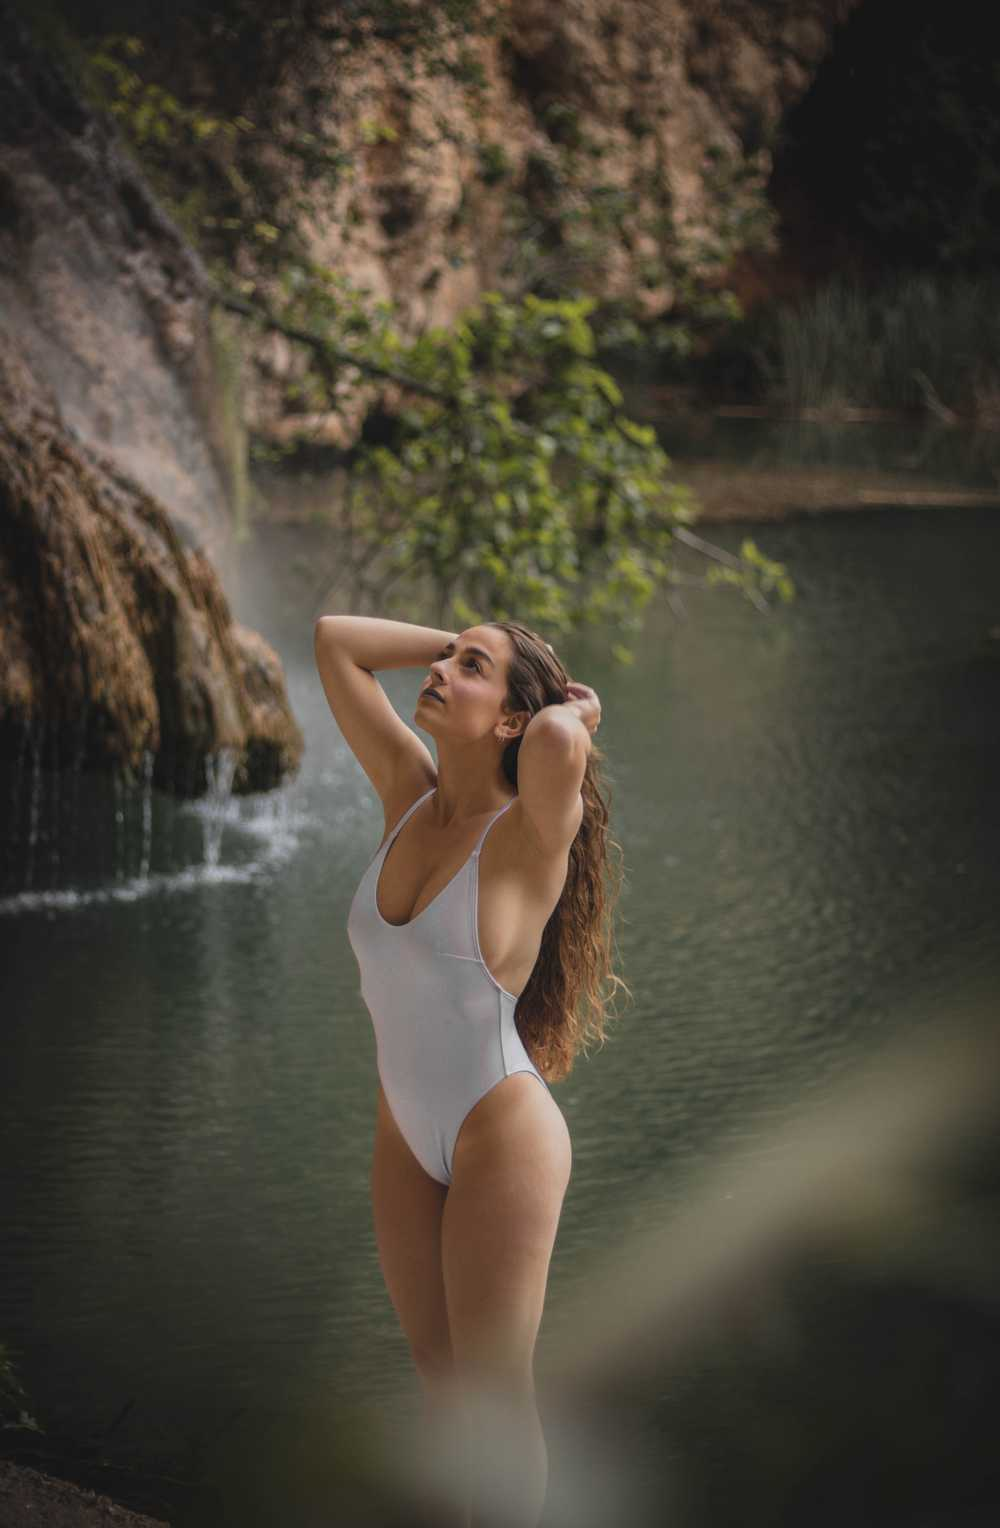 woman wearing white swimsuit standing near body of water